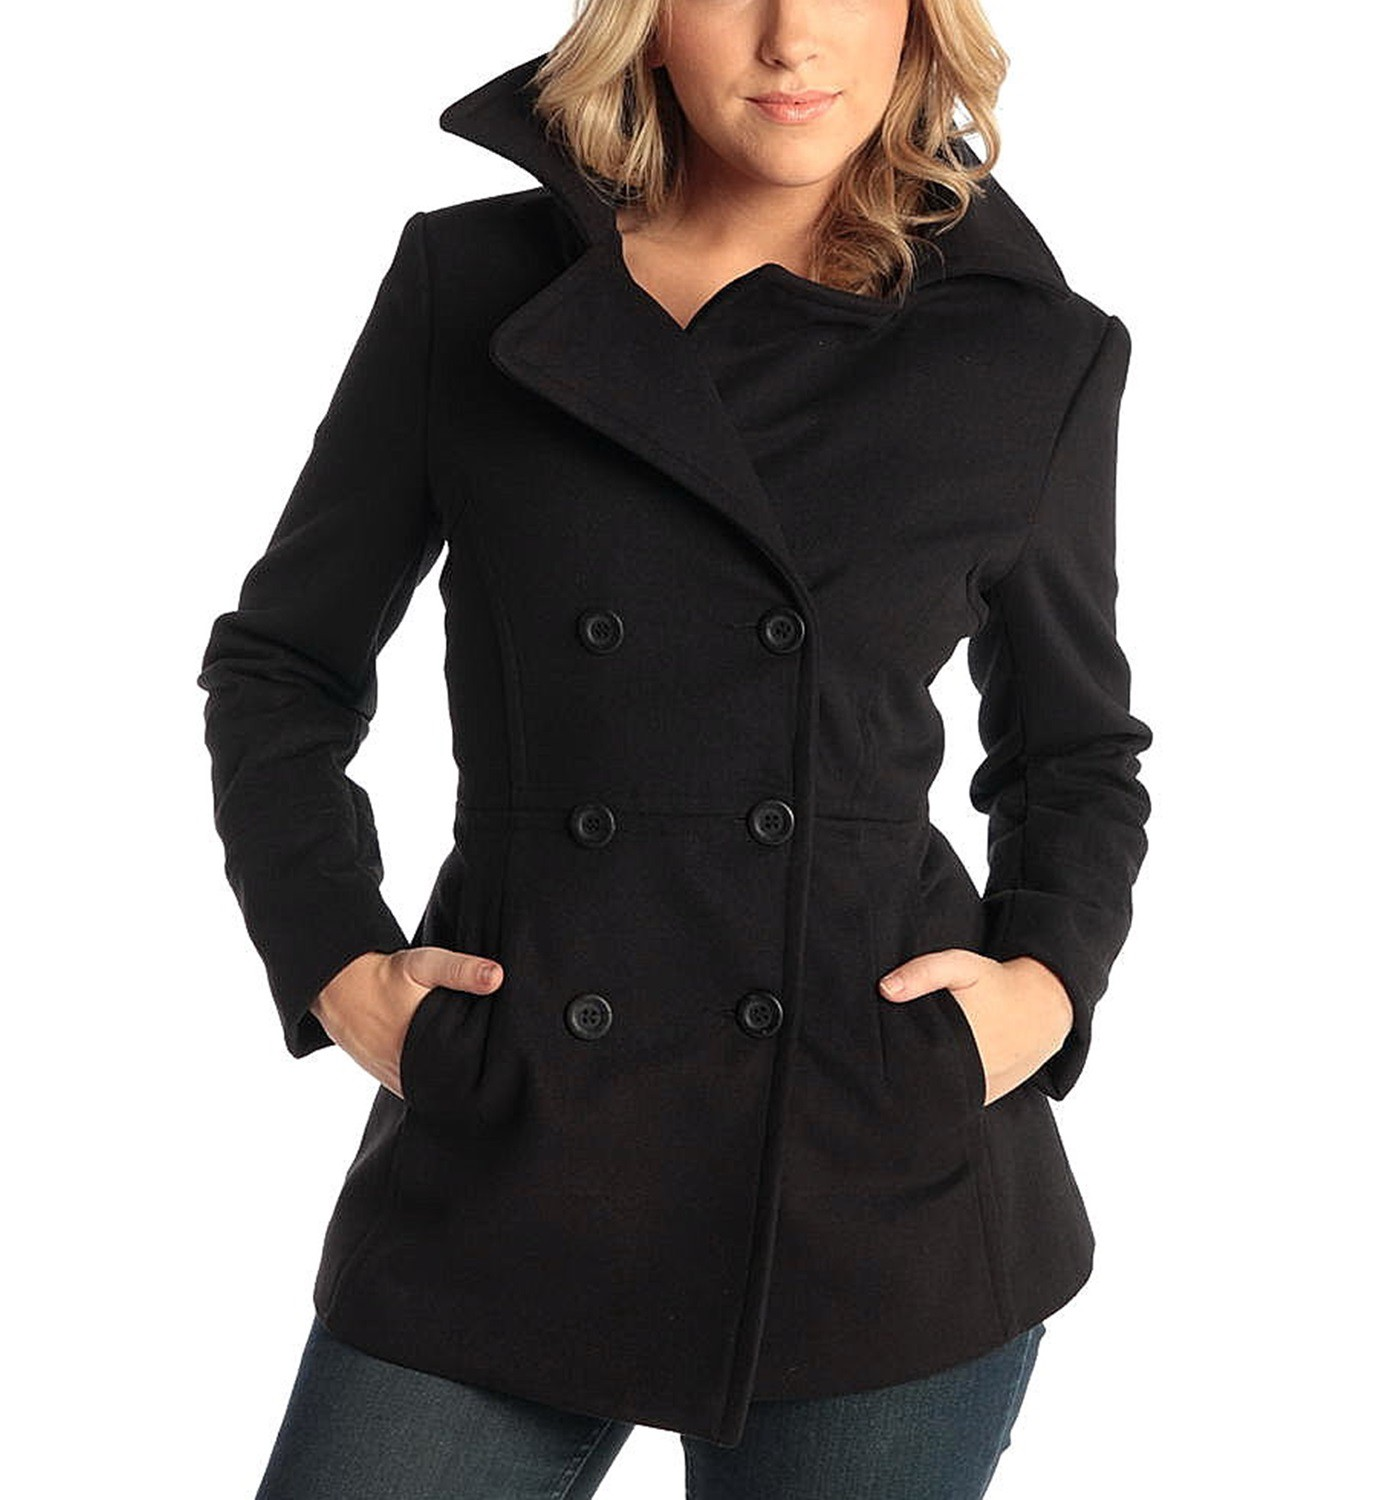 One of our best-selling, customer-favorite coats since , the cozy cocoon silhouette is back in its most luxurious form. Made from our exclusive stadium-cloth wool, created especially for us by Italy's Nello Gori mill (inspired by old-school stadium blankets, it adds warmth without bulk and we've used it in our collection every year since ), our cocoon coat will keep you warm through.